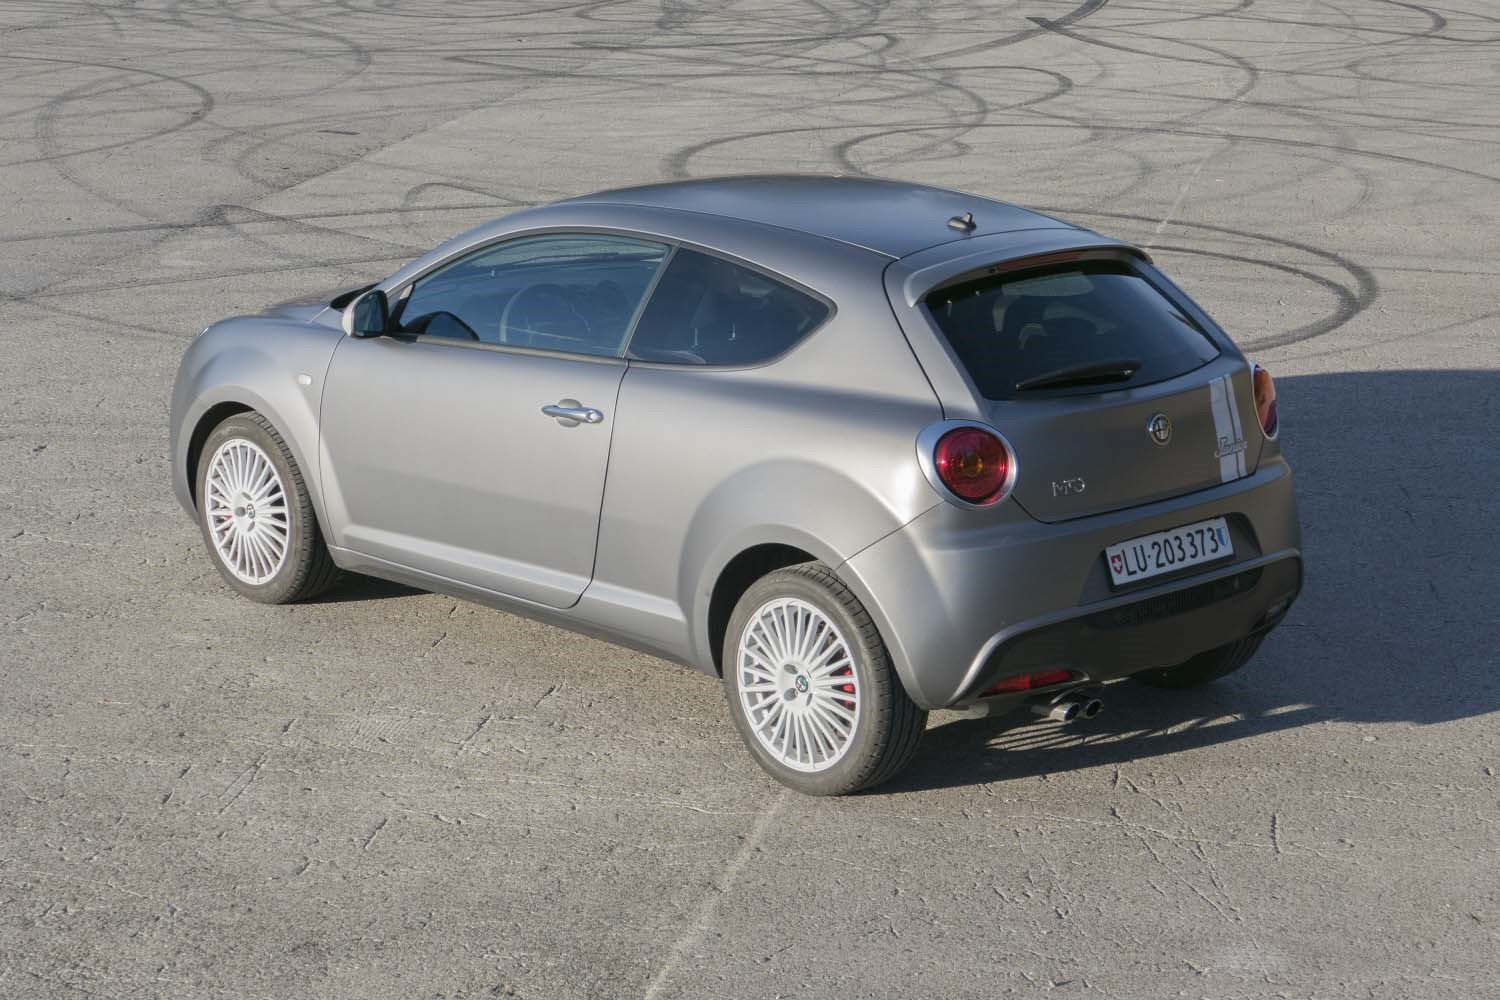 alfa romeo mito alfa romeo mito 2015 im test. Black Bedroom Furniture Sets. Home Design Ideas